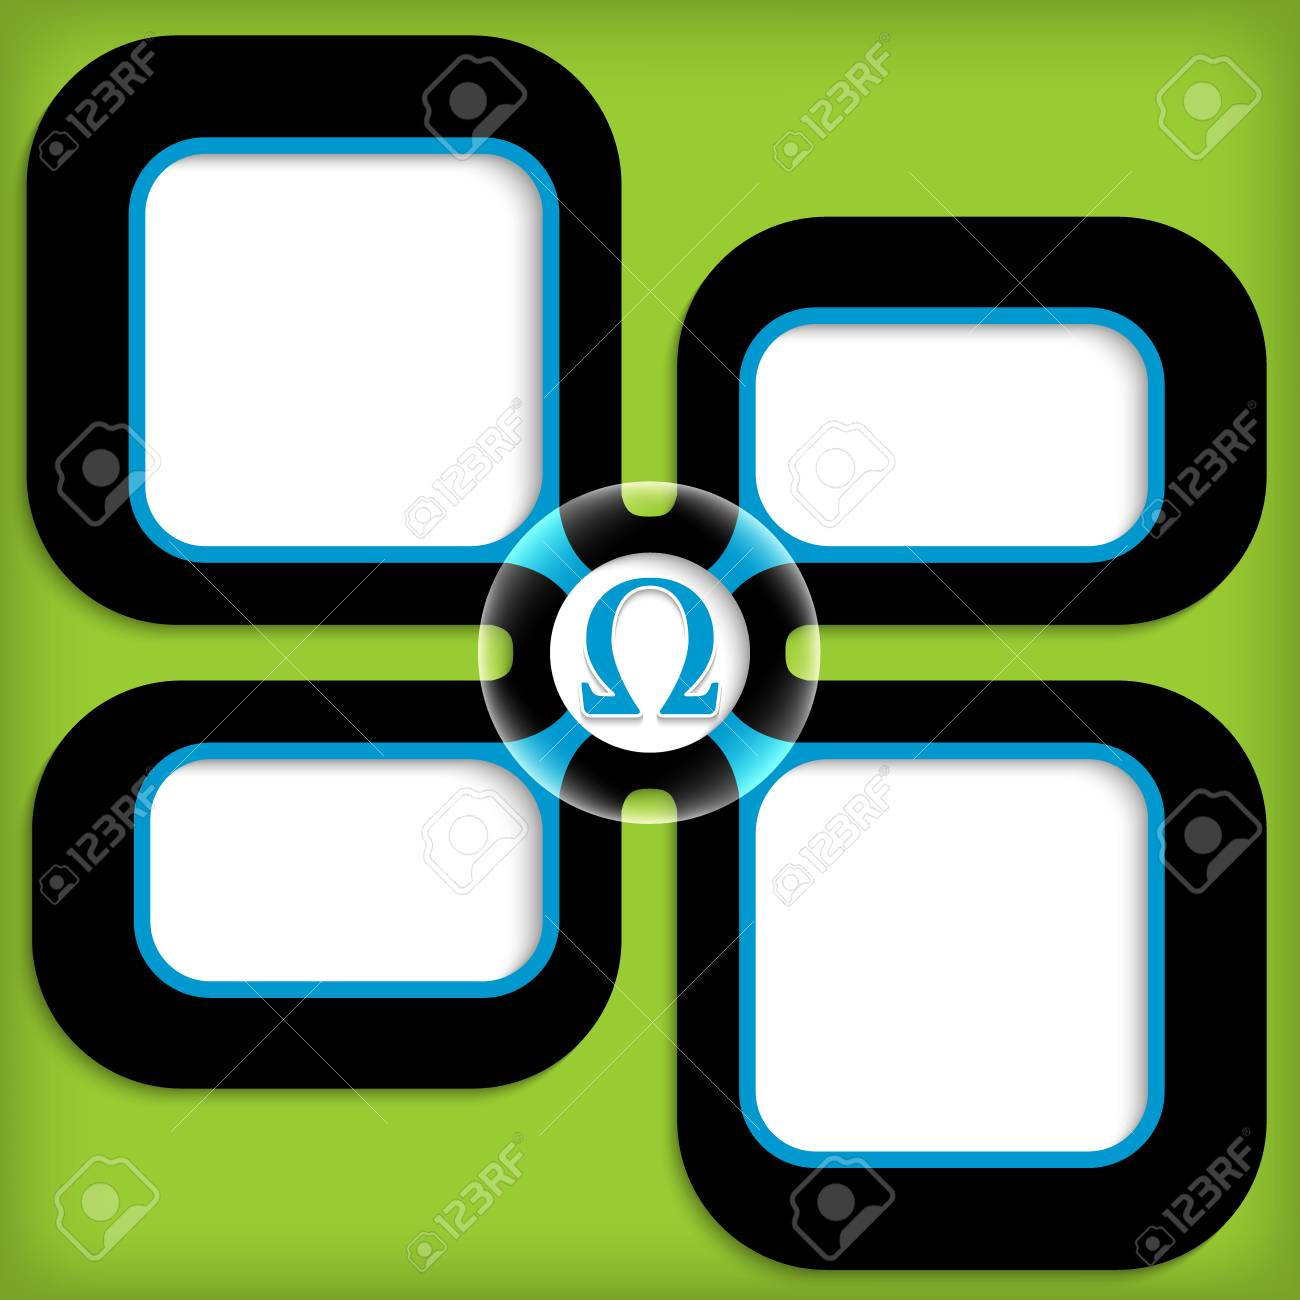 Four Boxes For Entering Text With Omega Symbol Royalty Free Cliparts